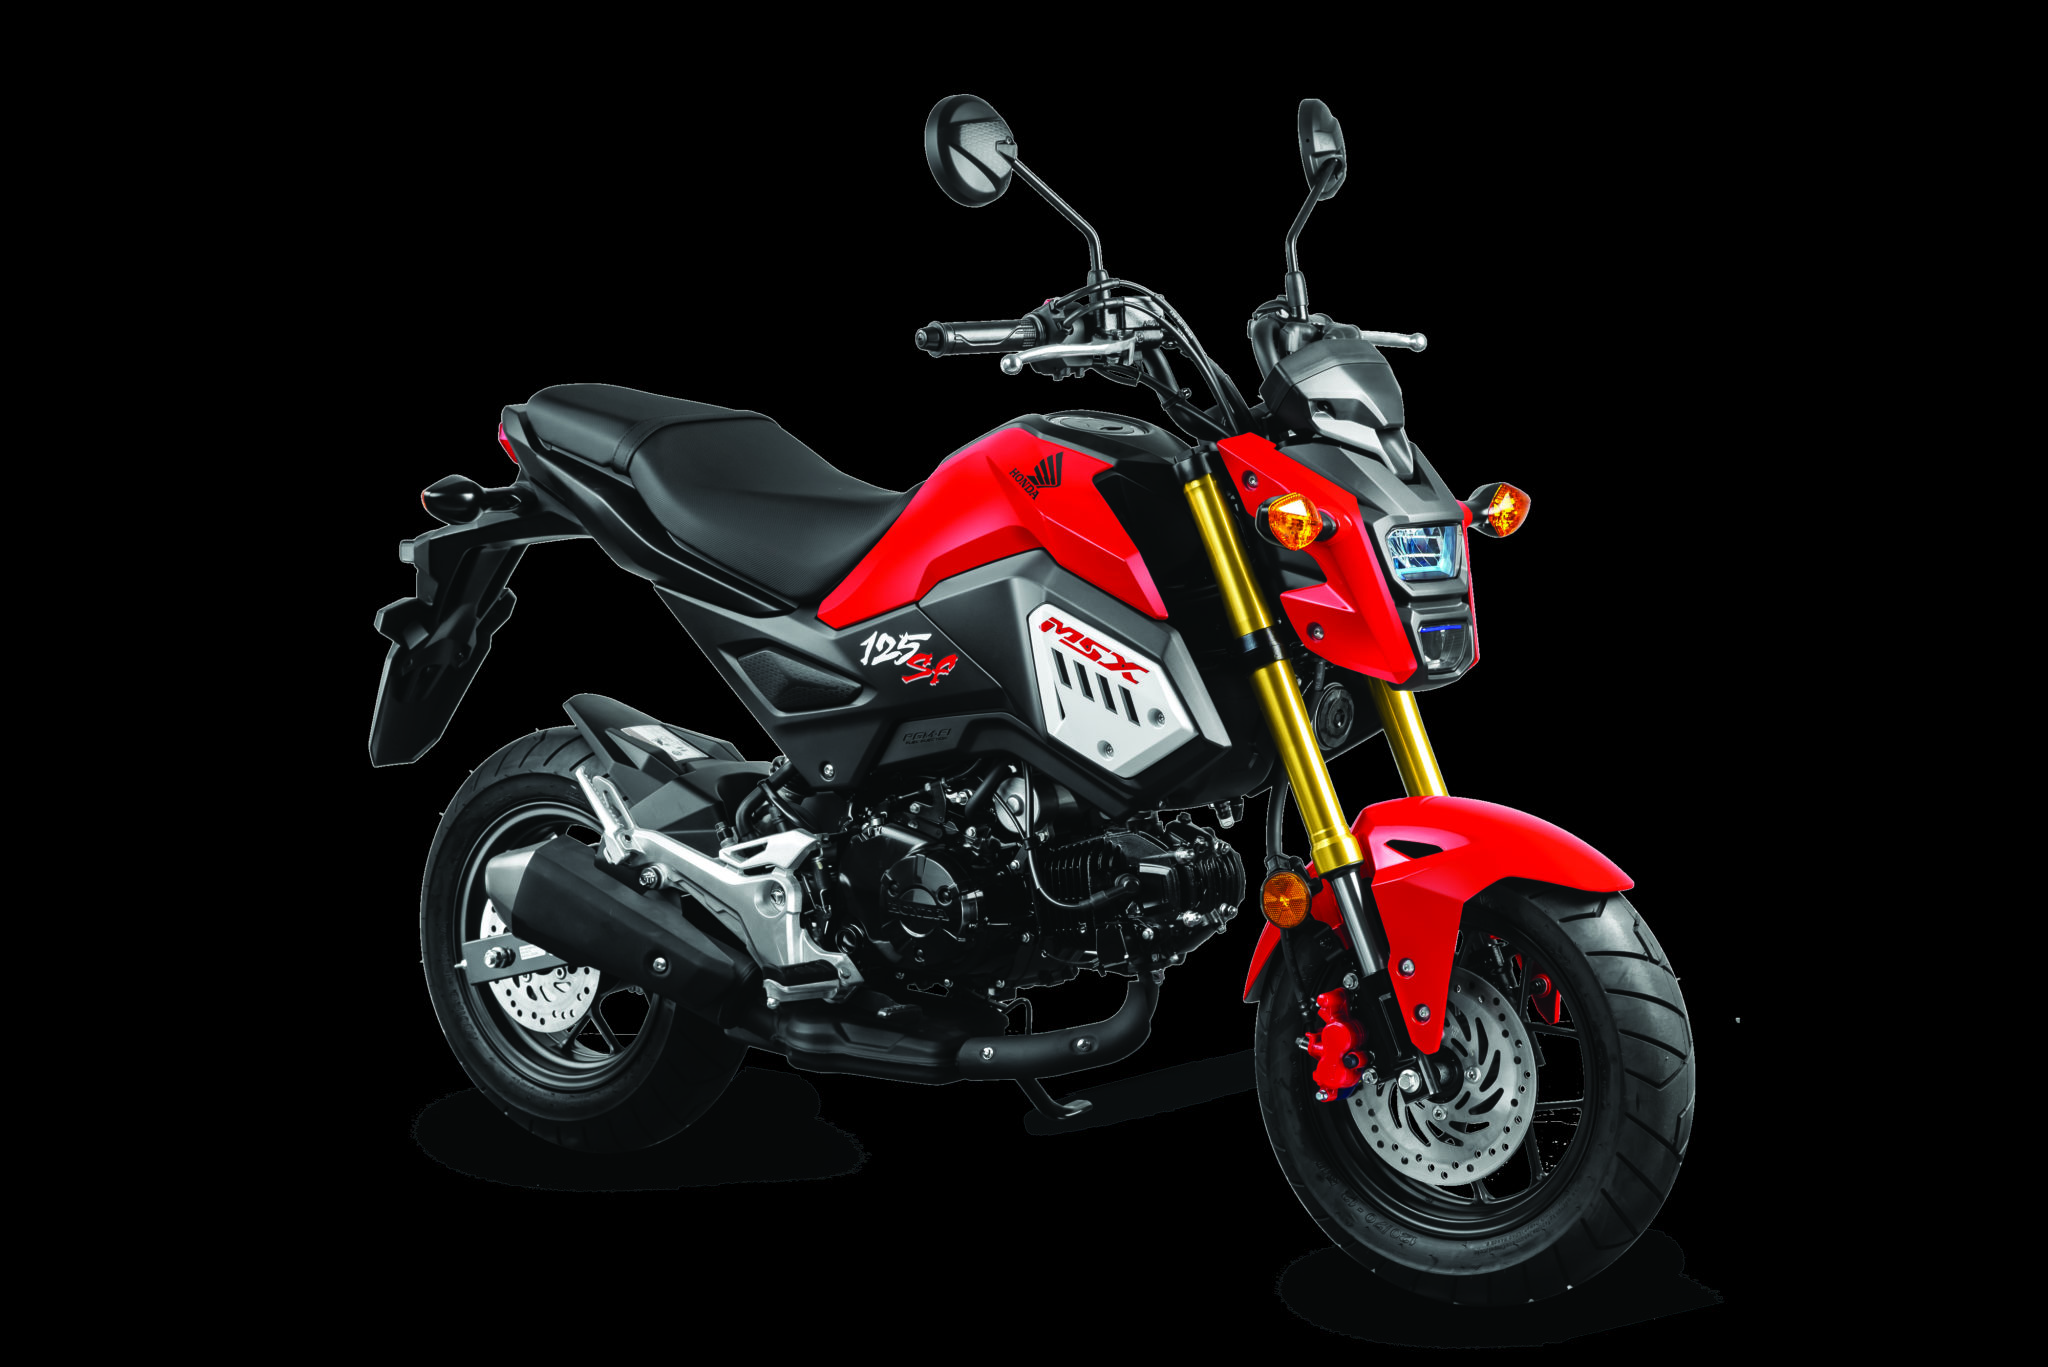 Honda introduces the new MSX 125 SF in Malaysia